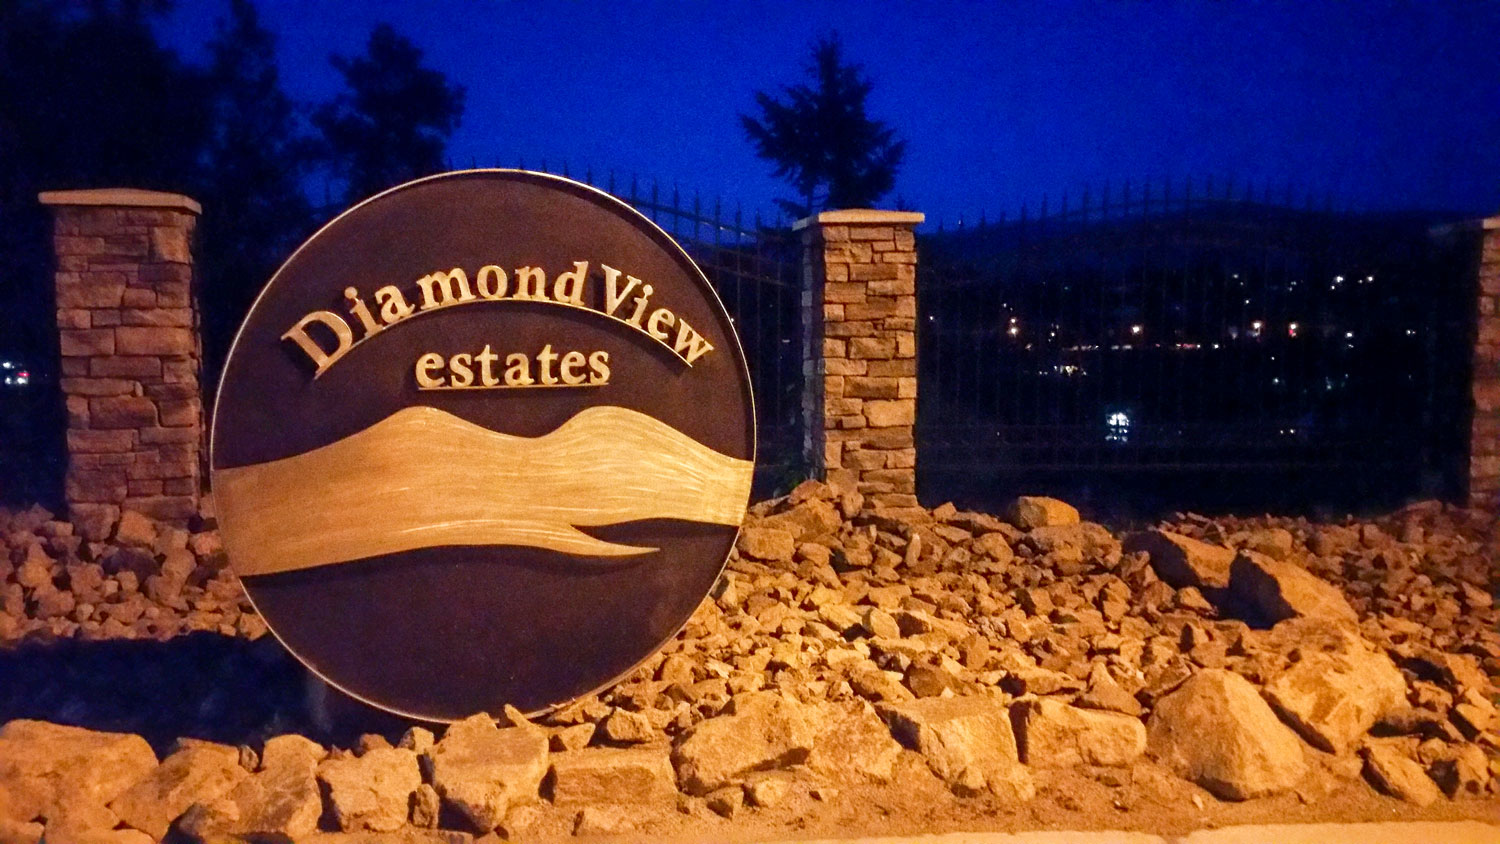 Diamond View Estates